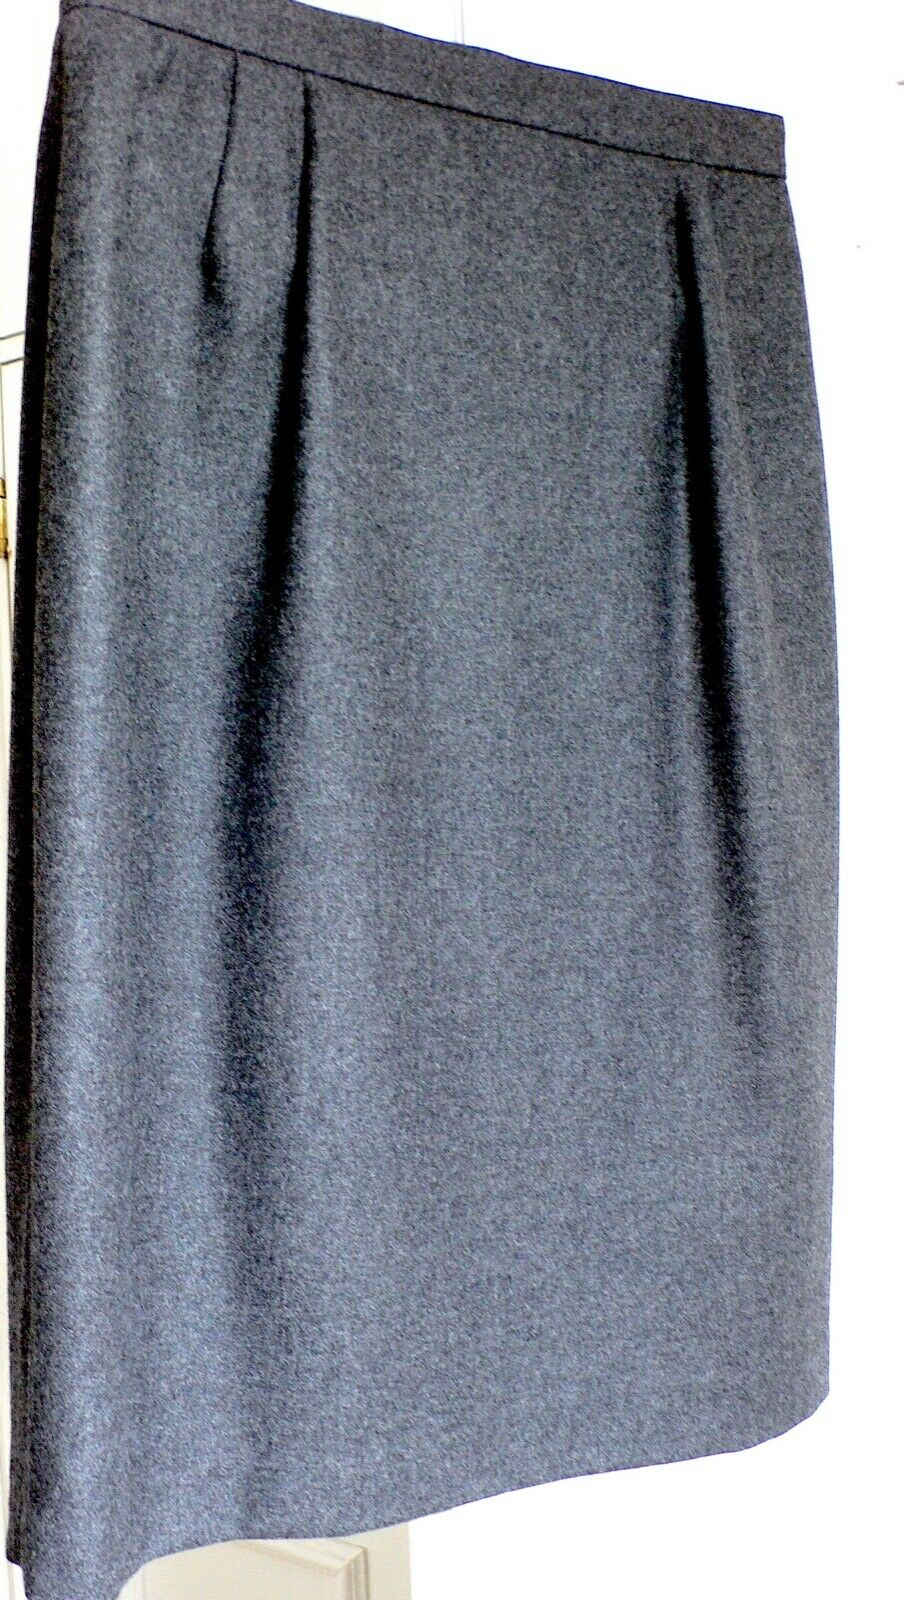 Emanuel UNGARO Paris Wool Pencil Skirt 12 Grey – FREE UK P&P